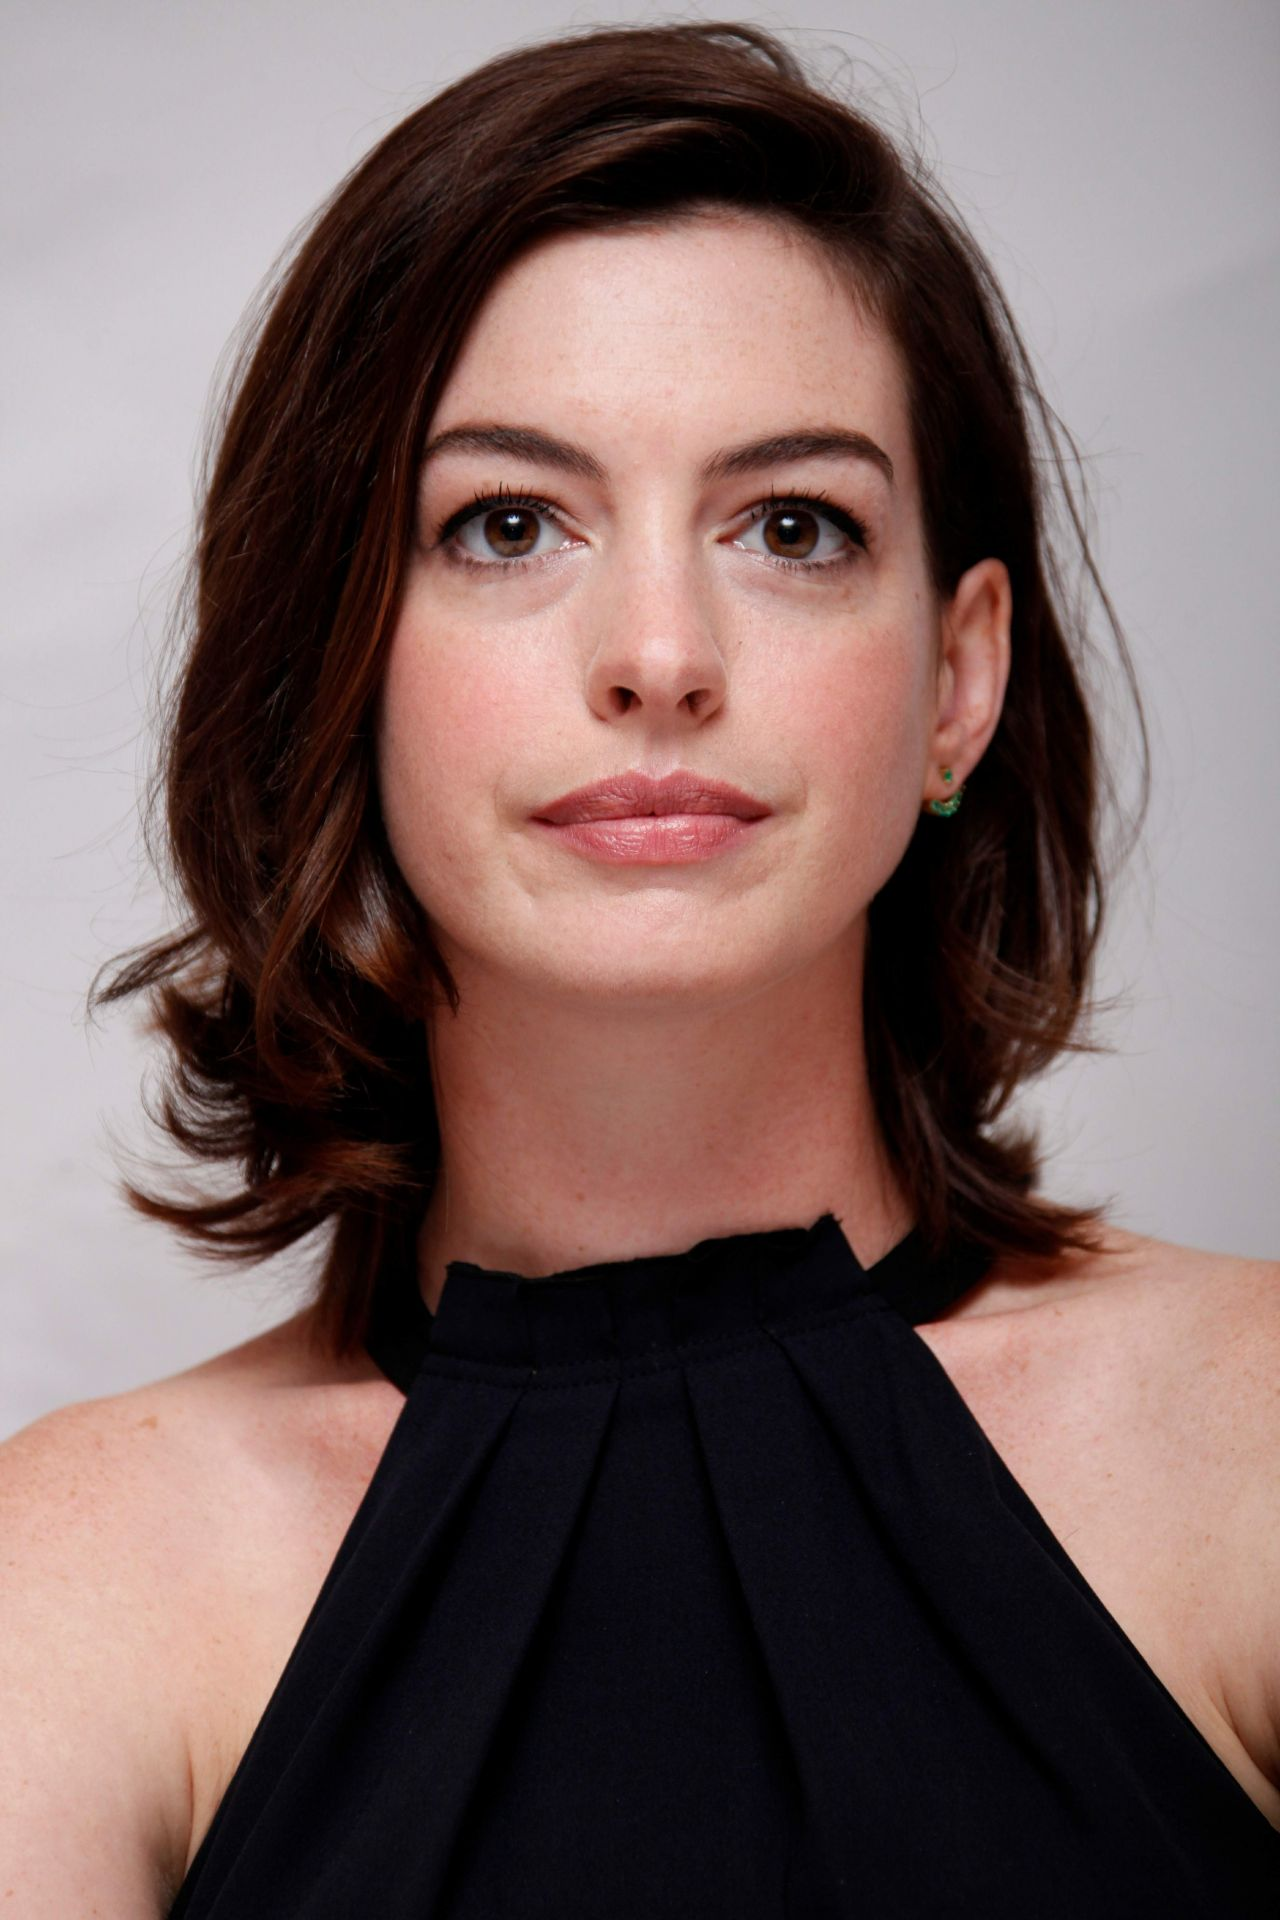 Busty MILF Anne Hathaway Displays Her Perfect Cleavage